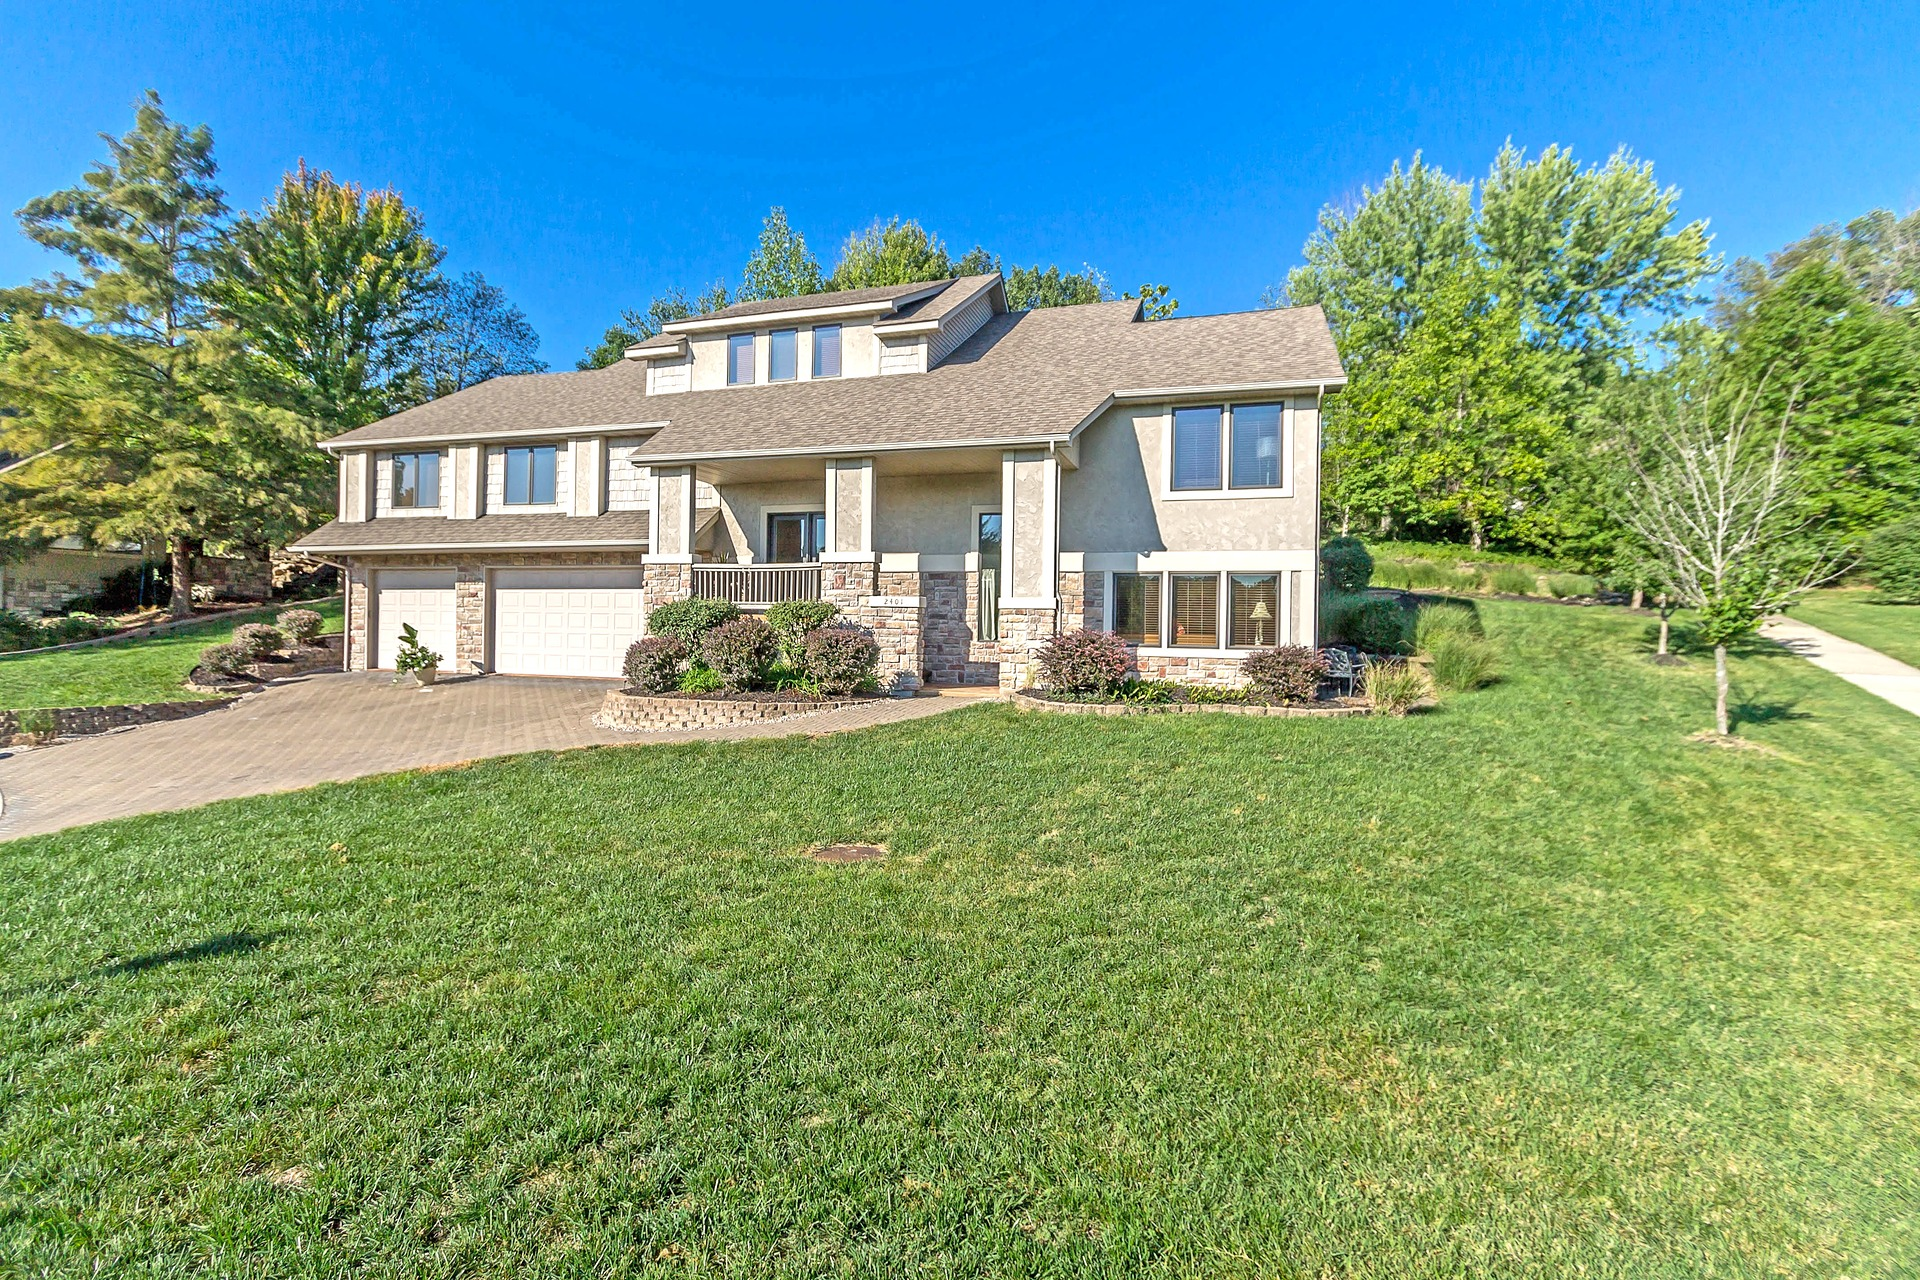 2401 Waterside Dr, Columbia, MO 65203